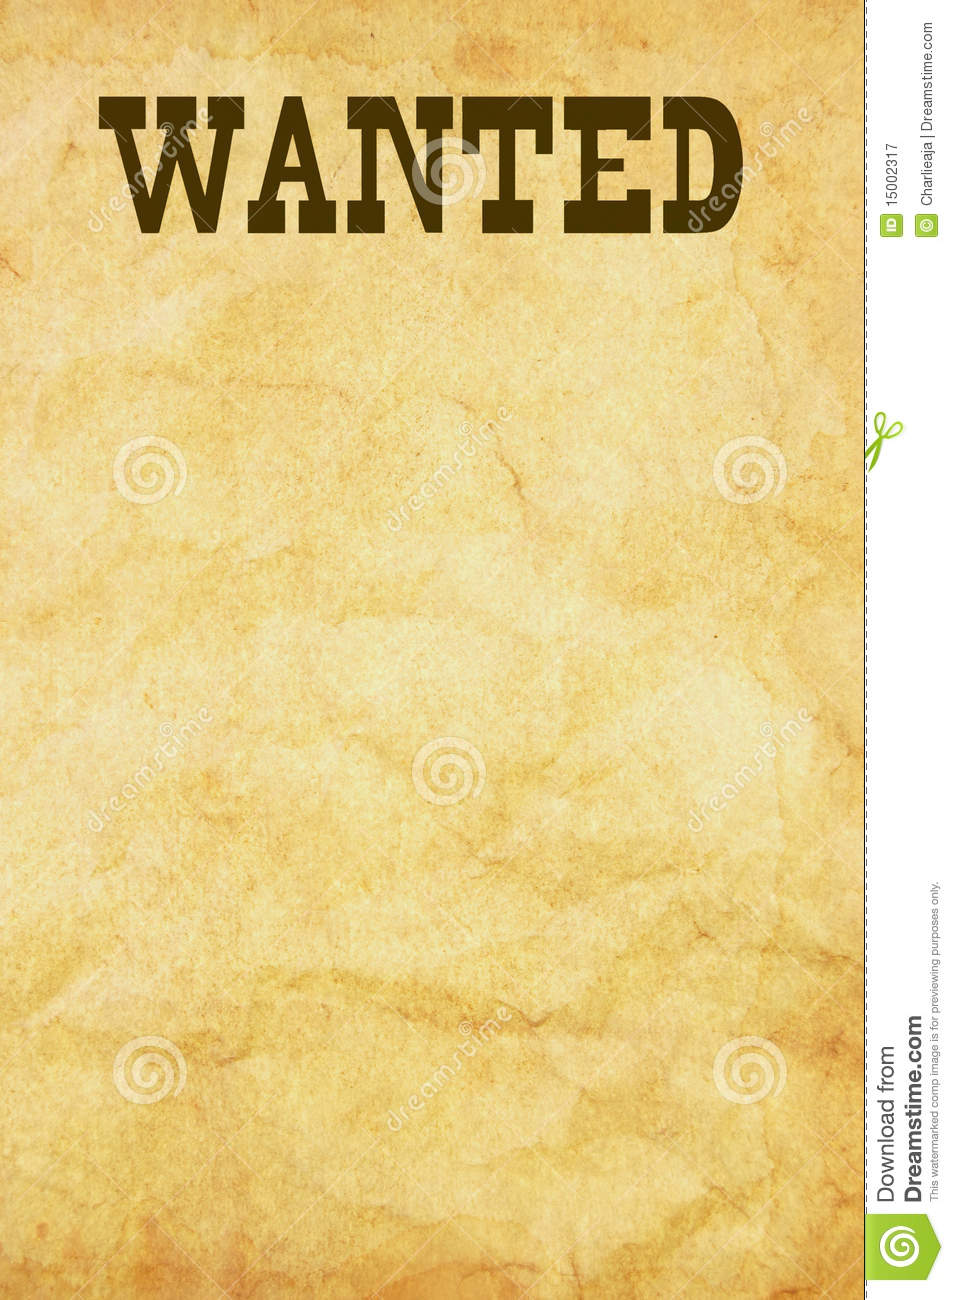 Wanted Poster: The Wild Bunch Poster (Billy the Kid, New Mexico ...